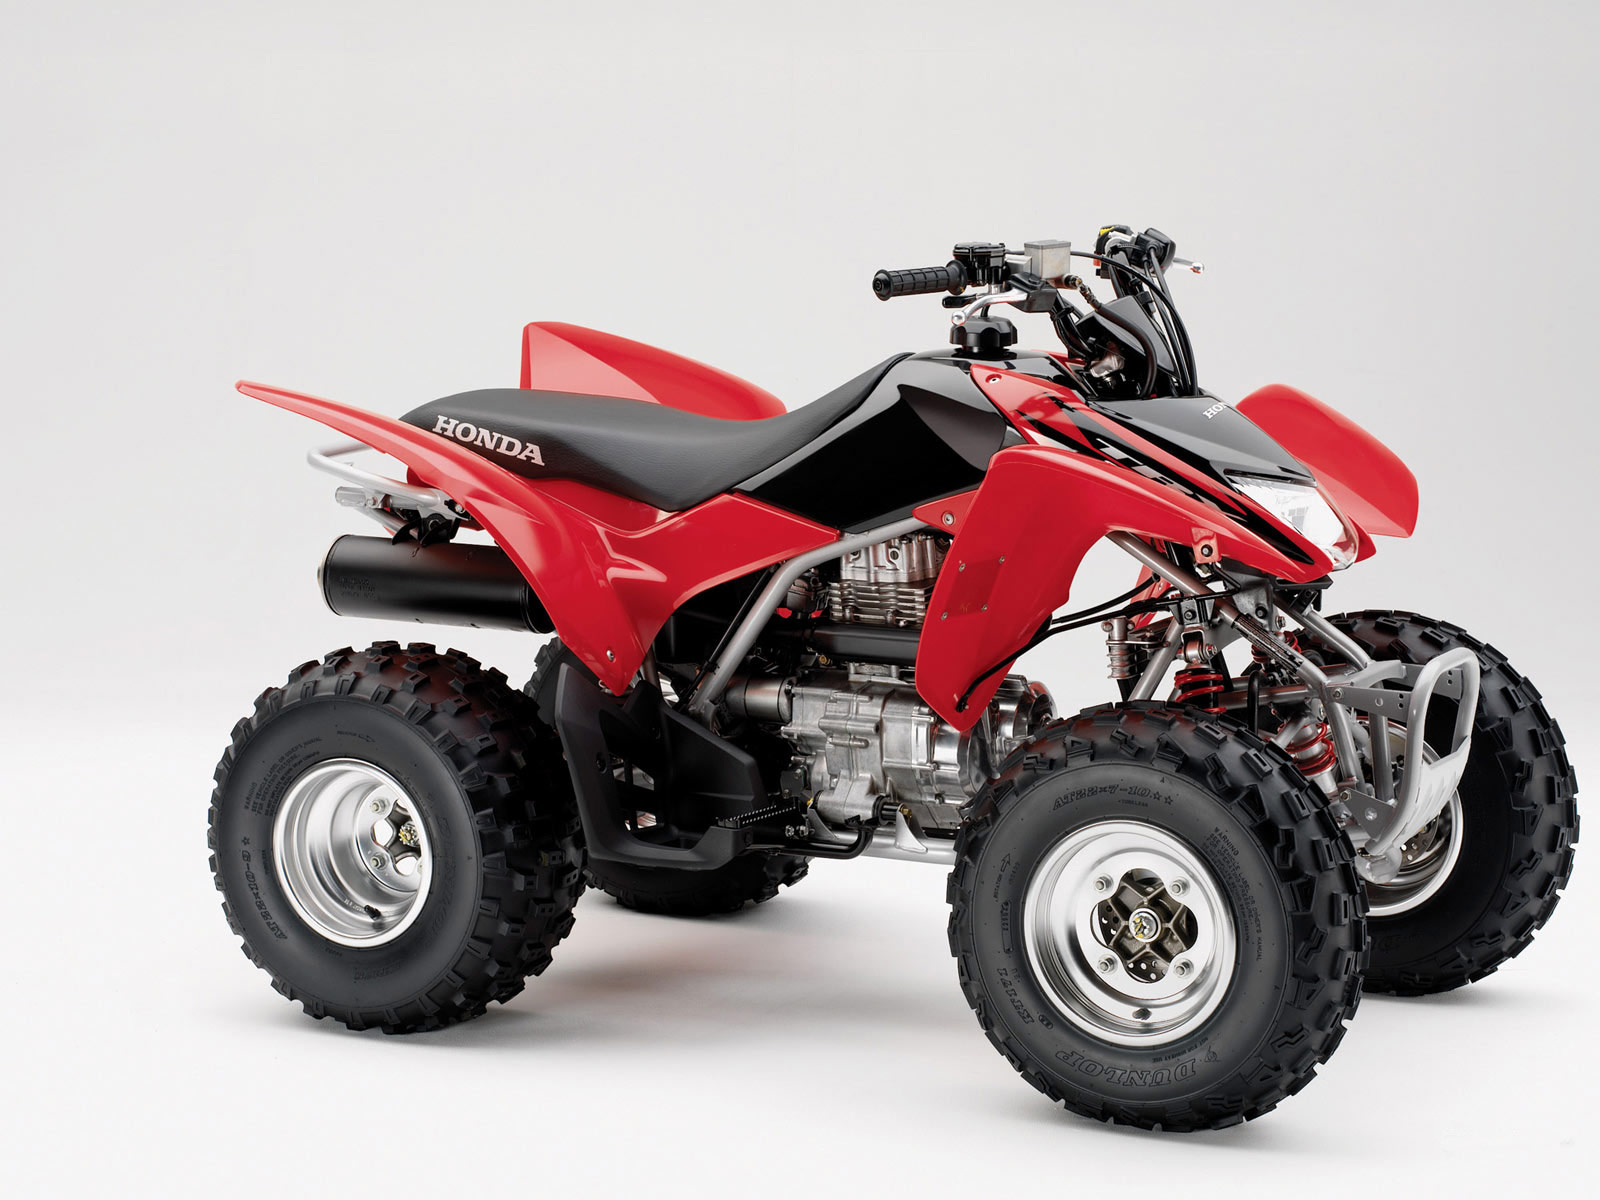 2006 trx250ex pictures honda accident lawyers information. Black Bedroom Furniture Sets. Home Design Ideas